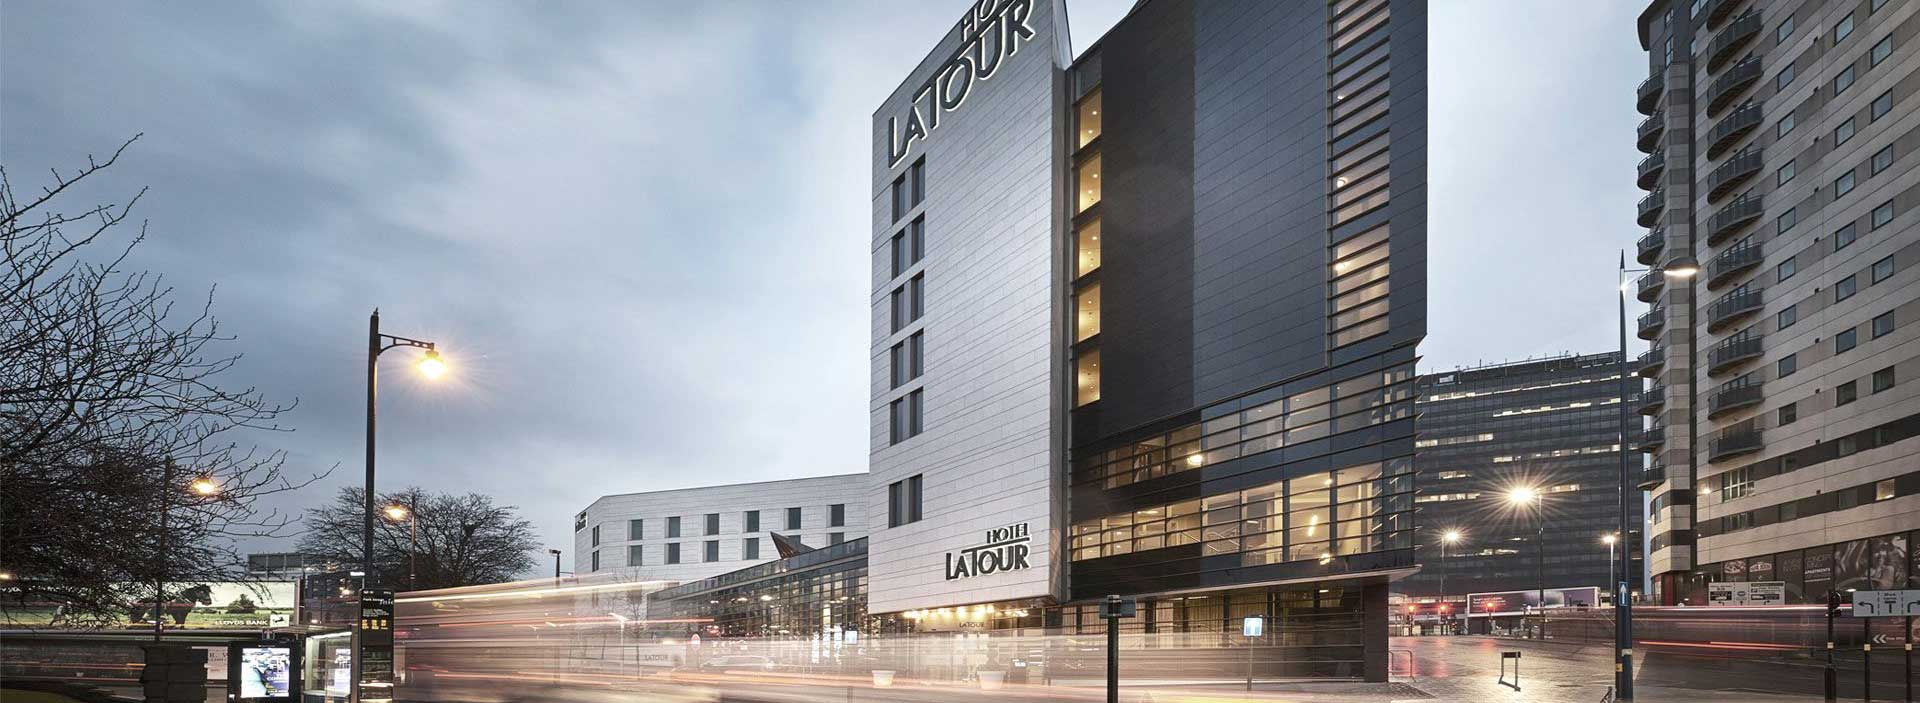 Engineering Hotel La Tour- exterior view- façades